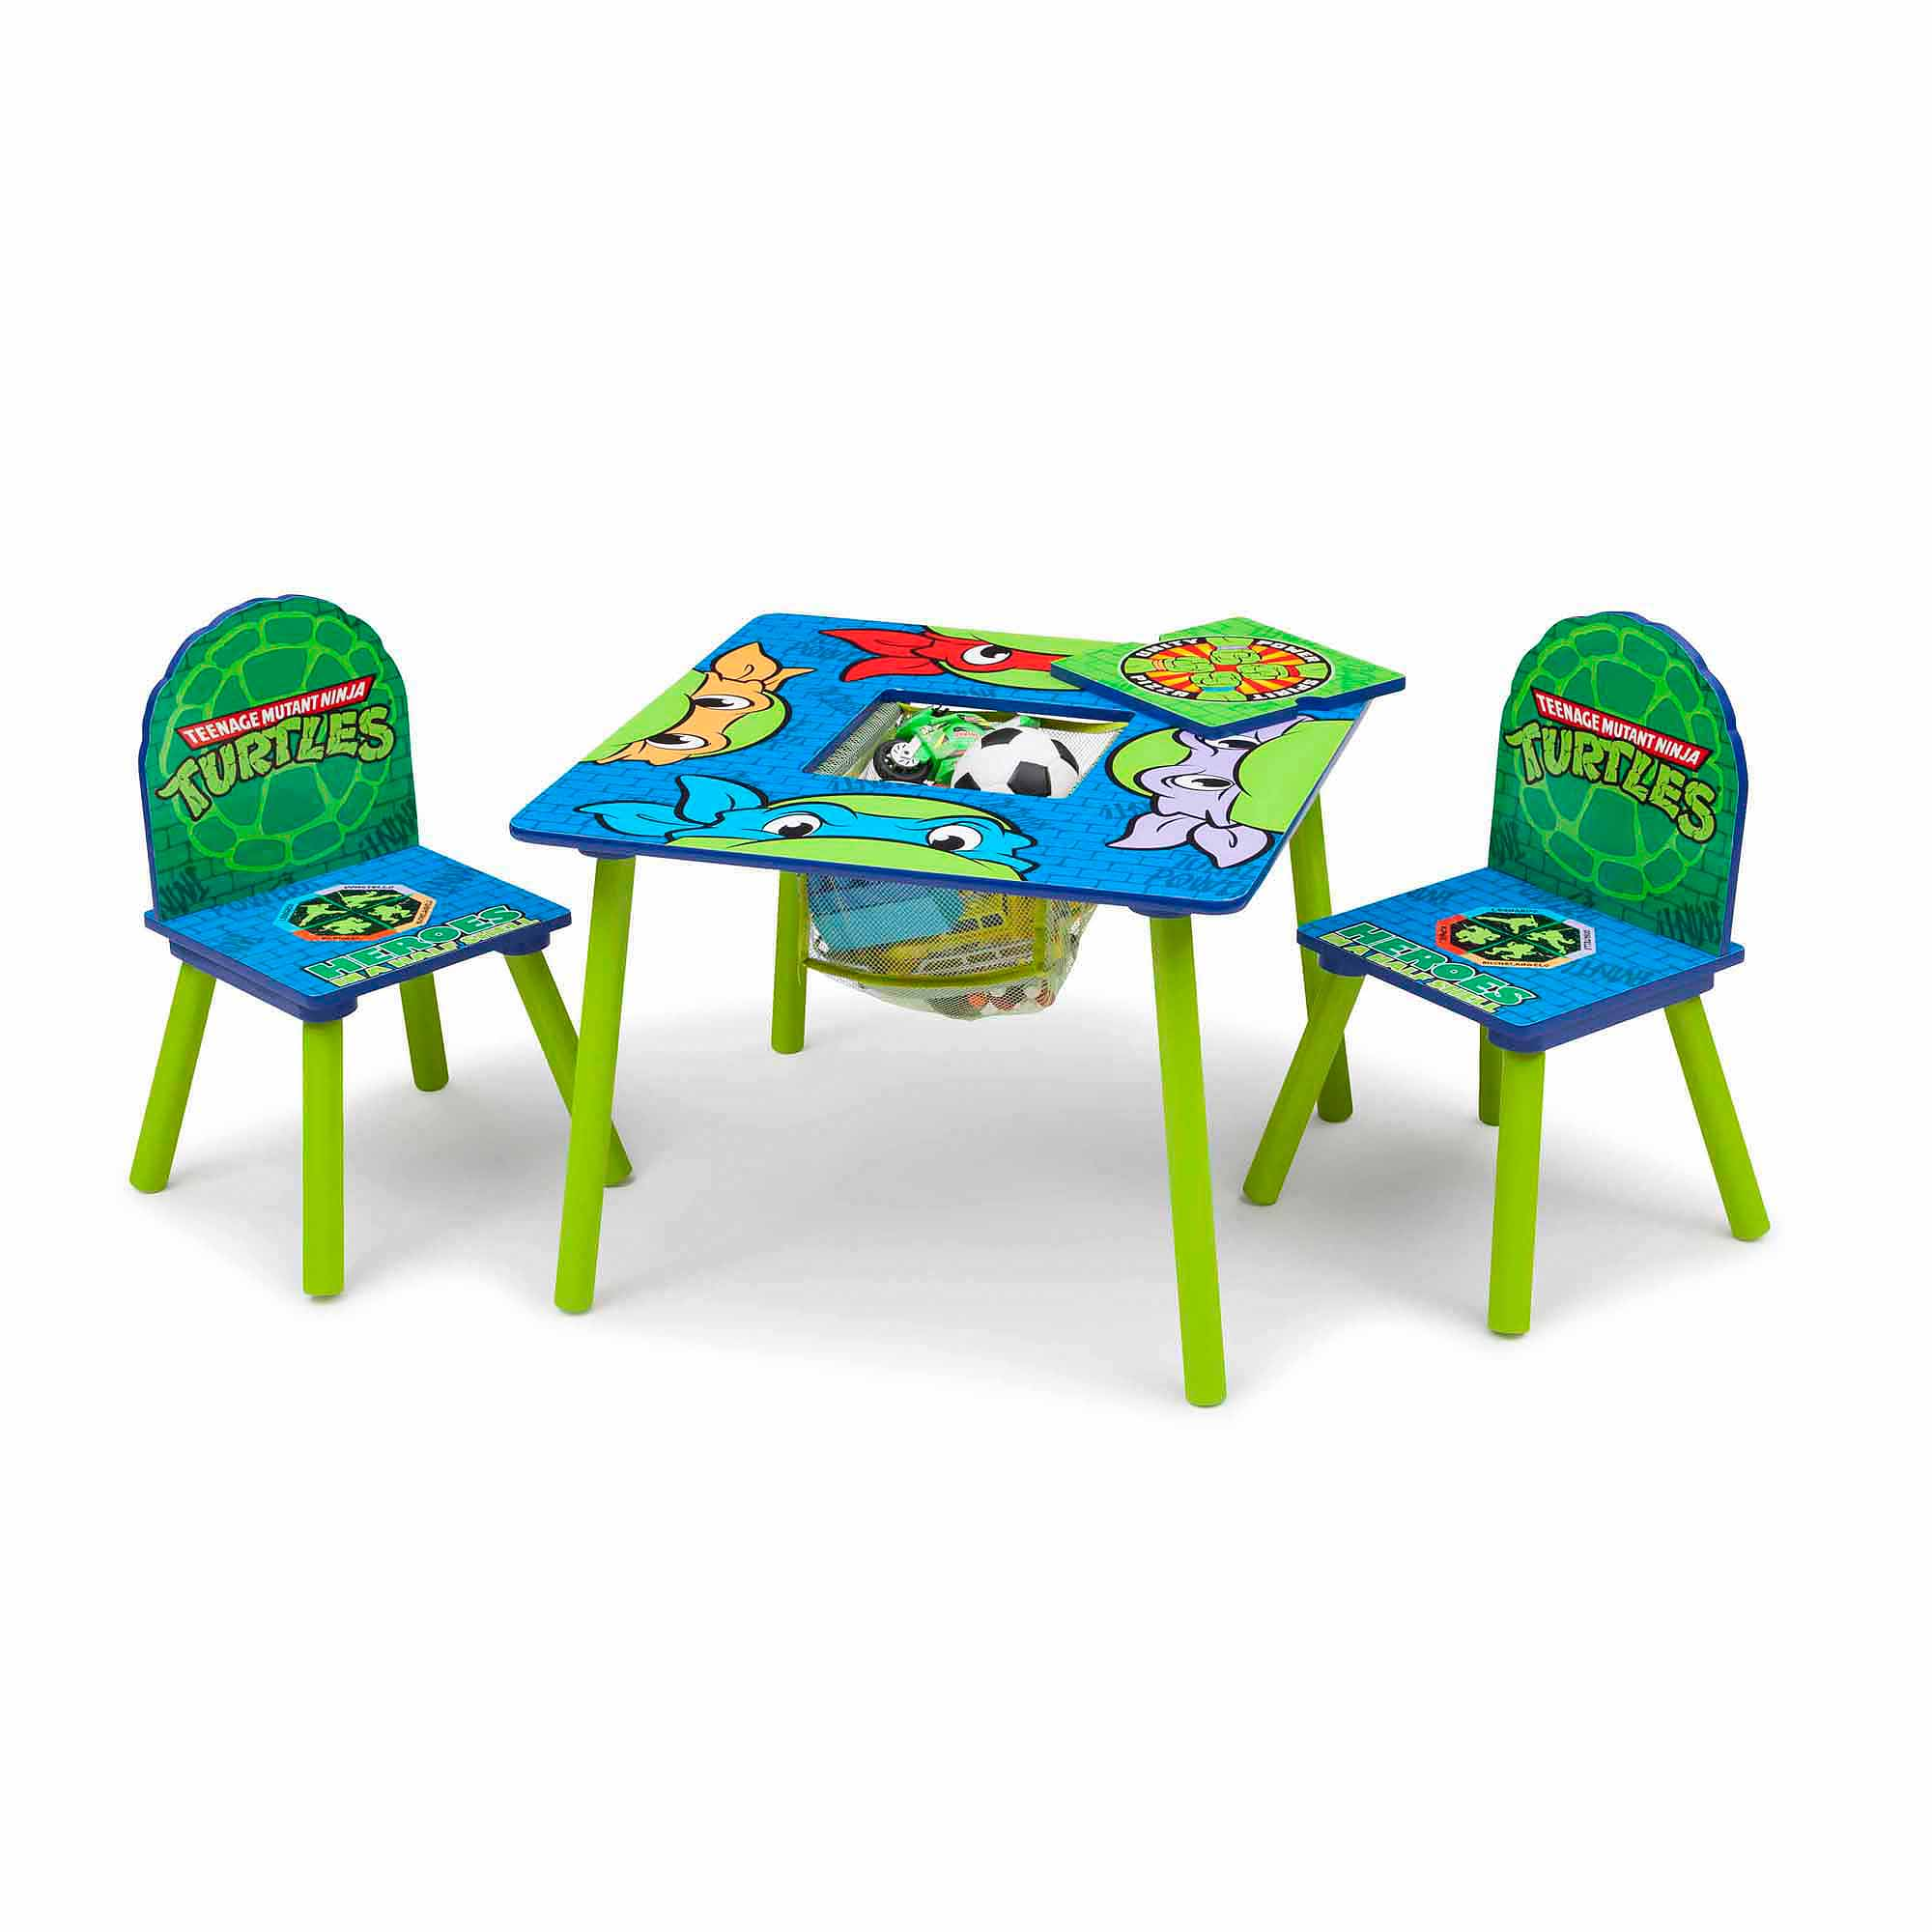 Teenage Mutant Ninja Turtles Furniture